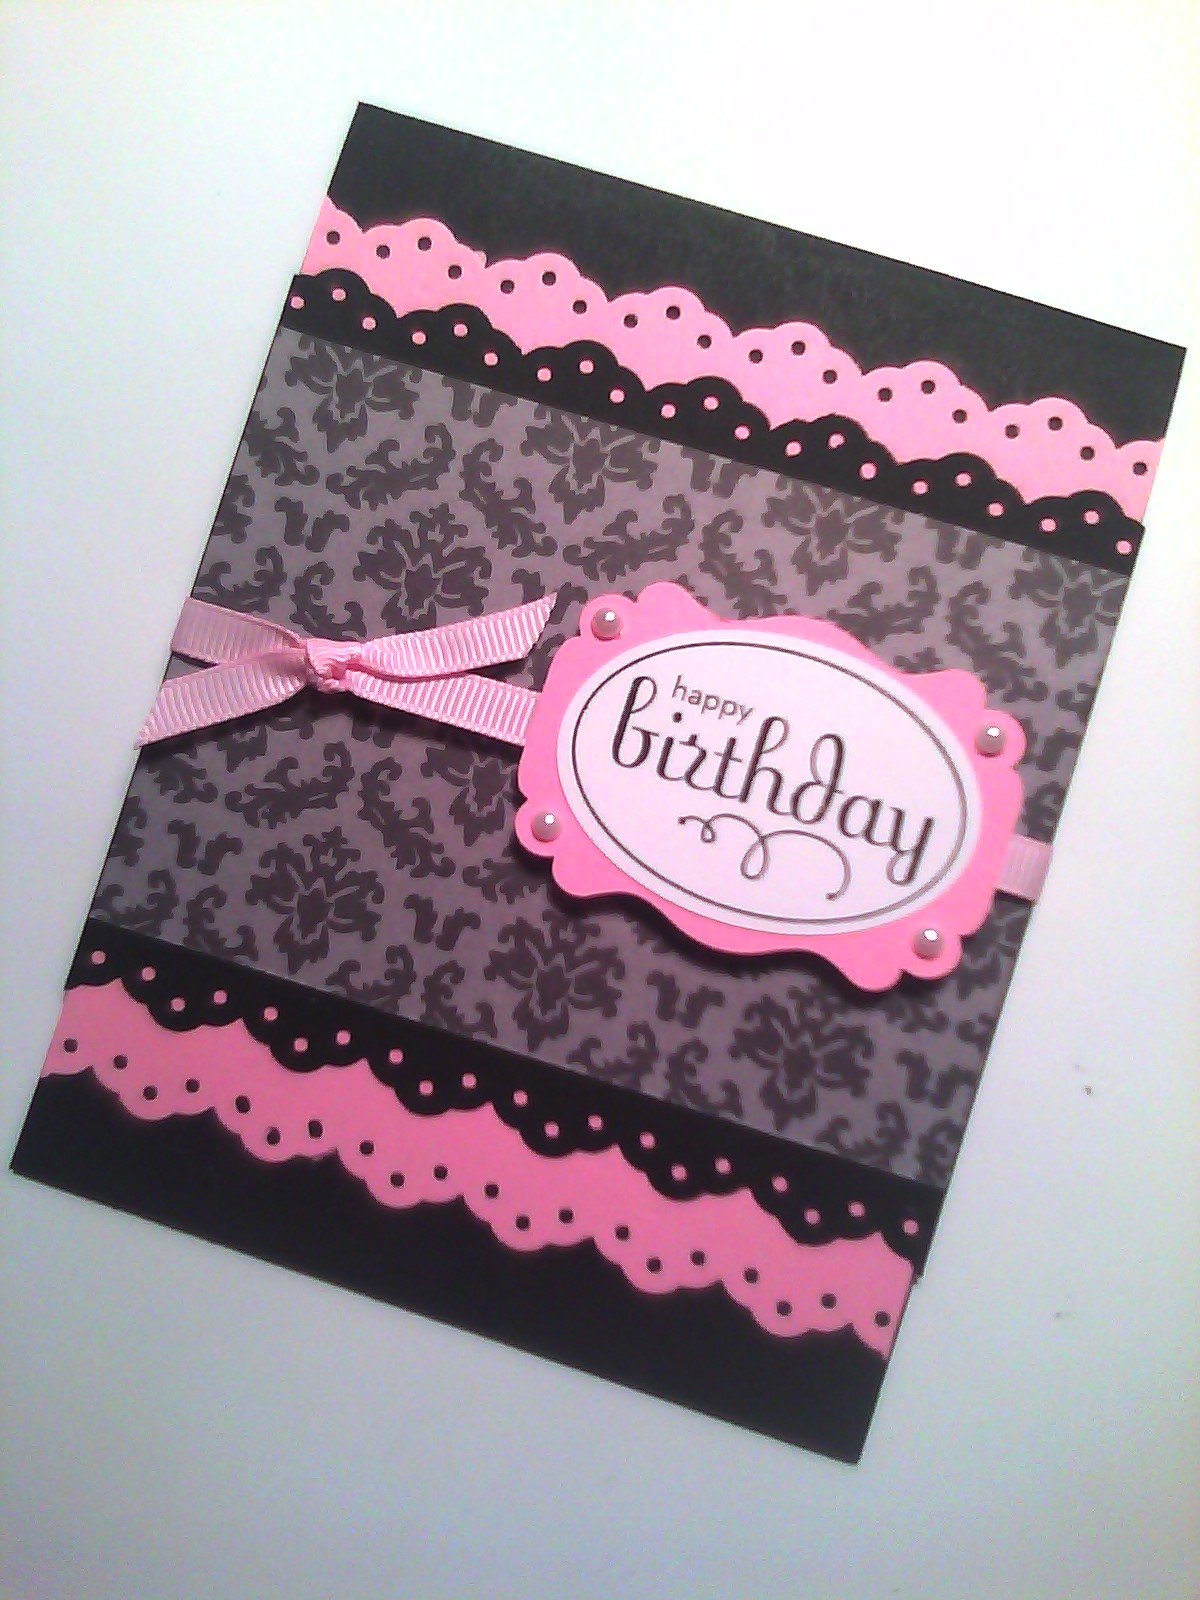 Sistochris Scrapbooking And Paper Crafts Handmade Stamped Greeting